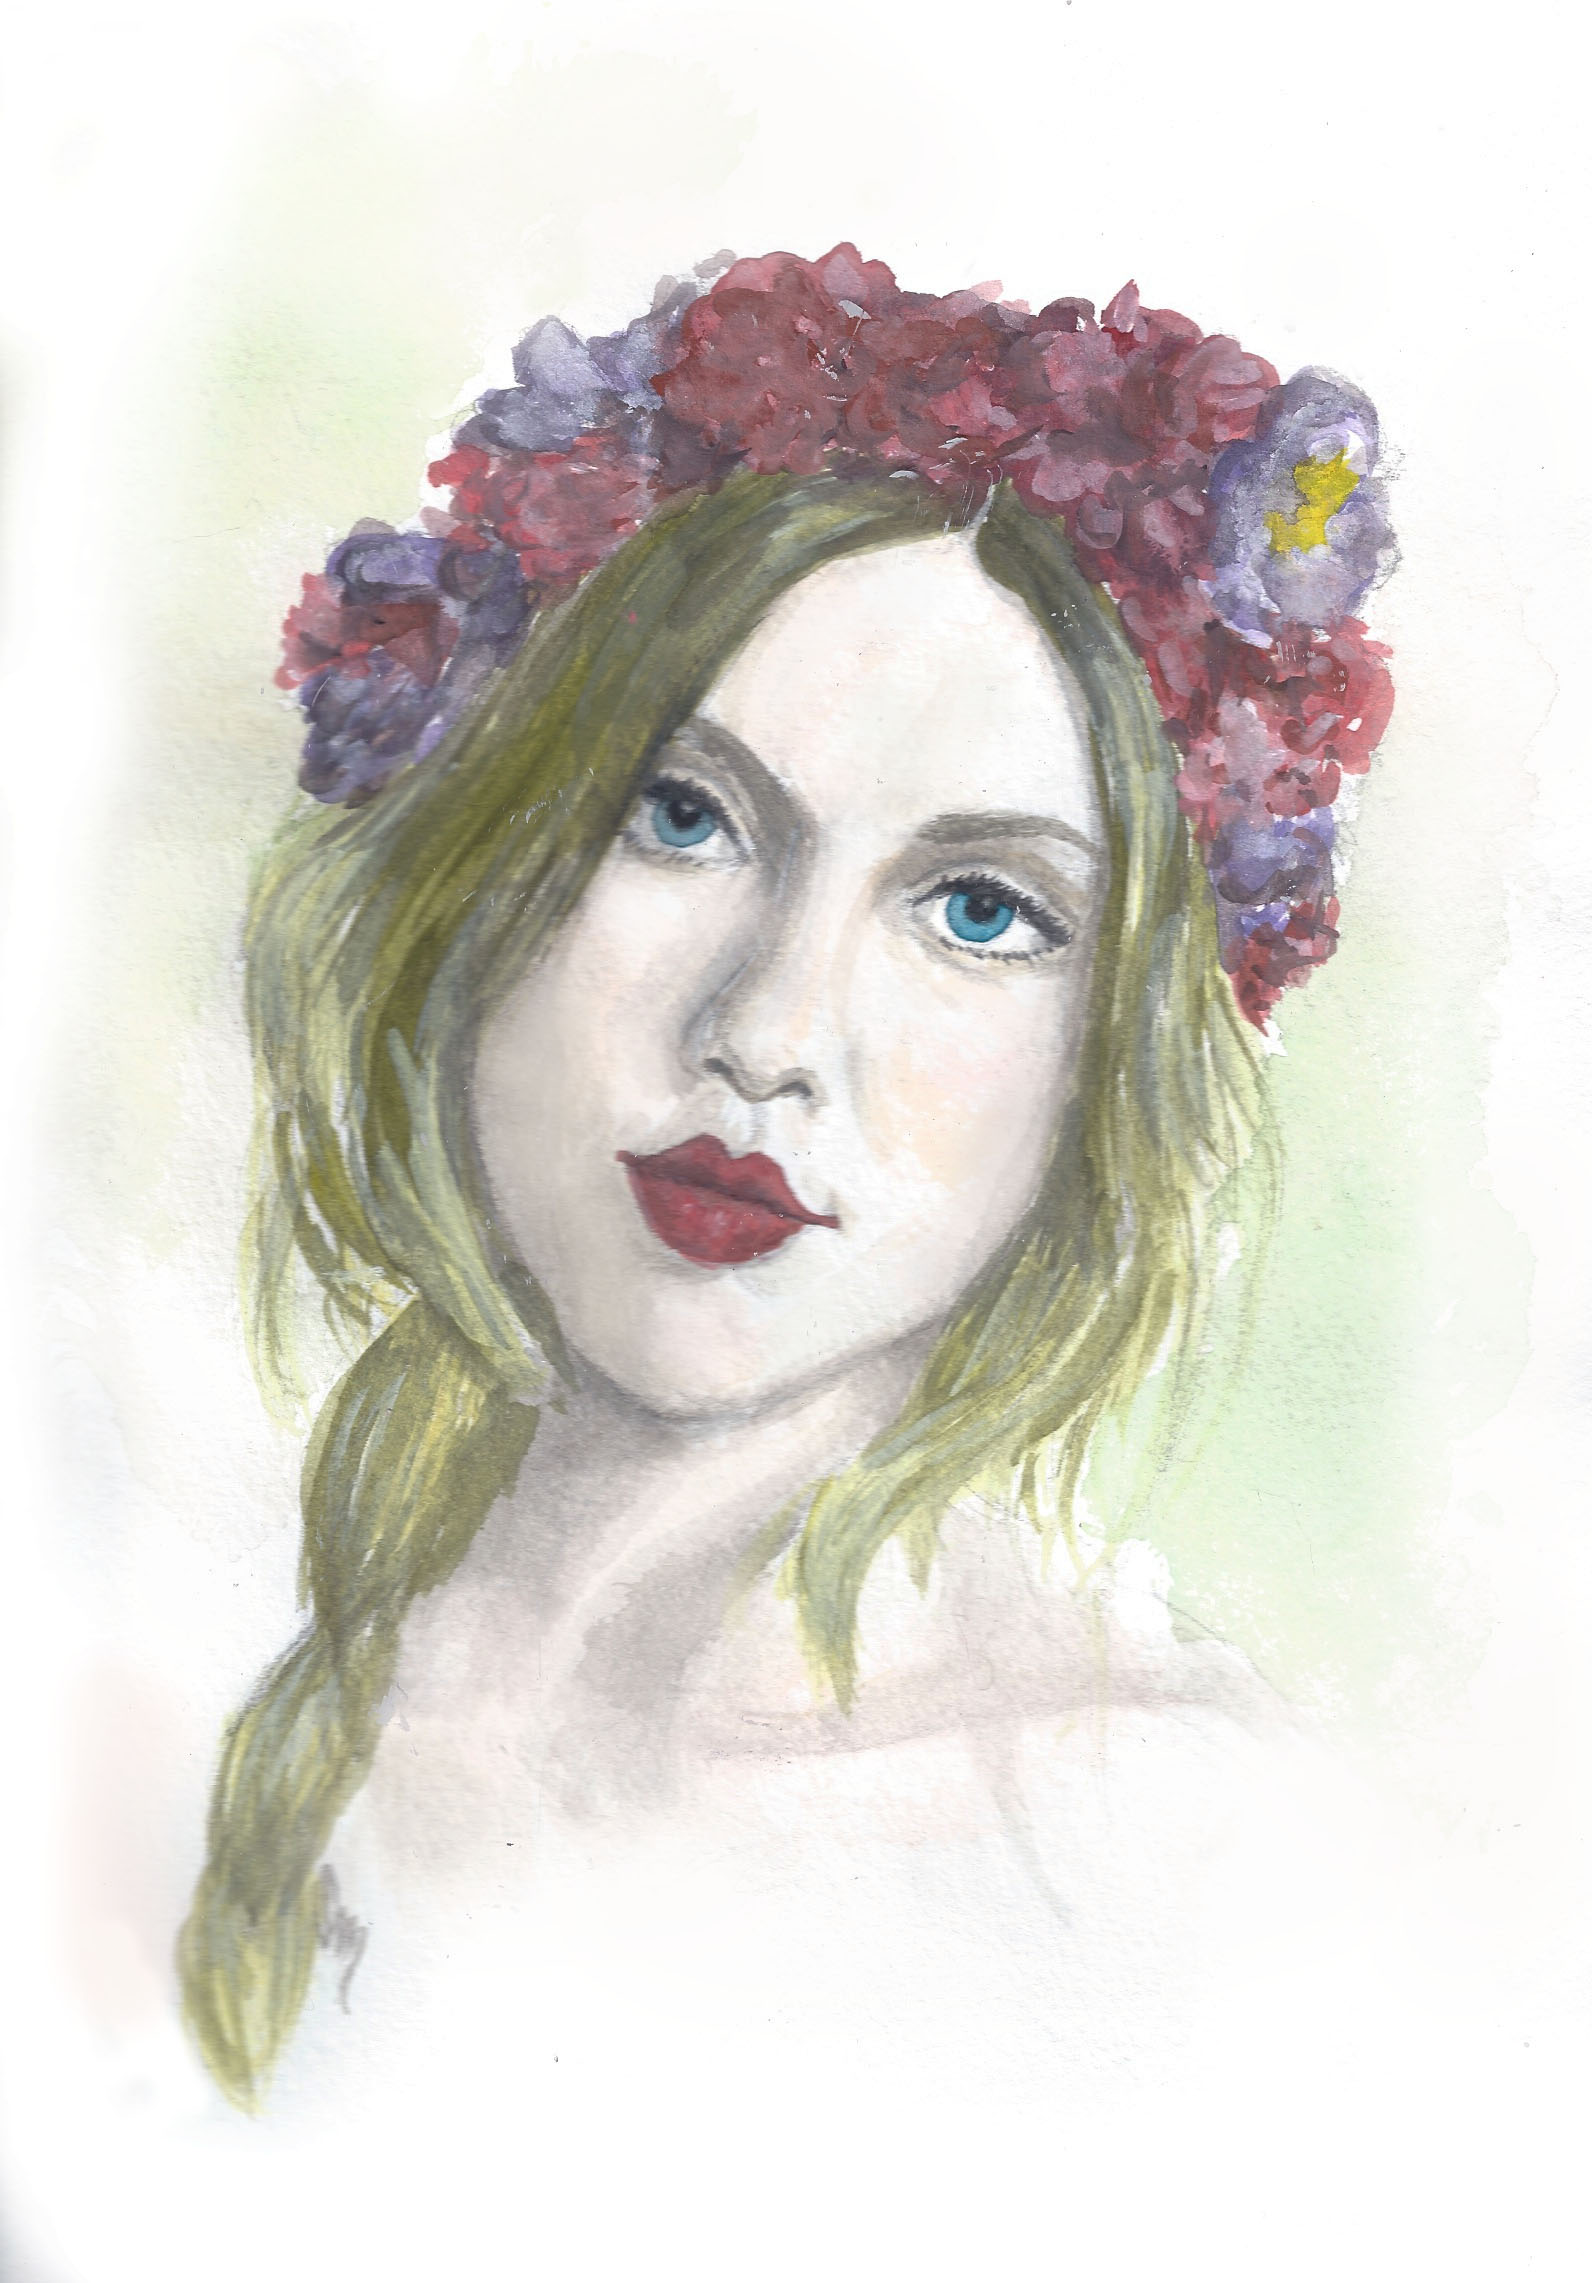 Girl with a Flower Crown: Jo of Lost in the Haze